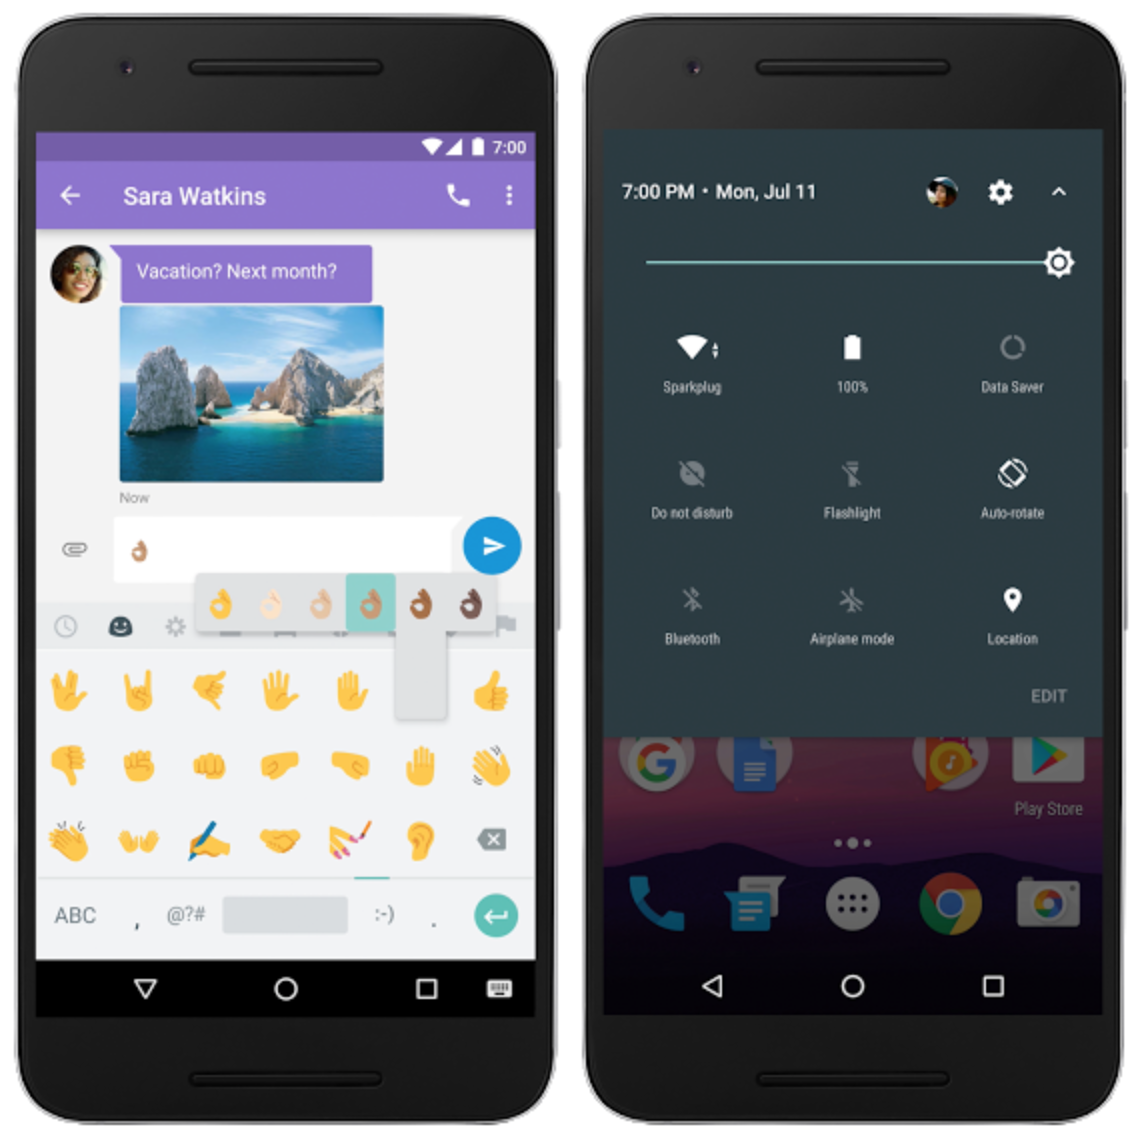 Android 7.0 Expanded emoji and Quick Settings controls